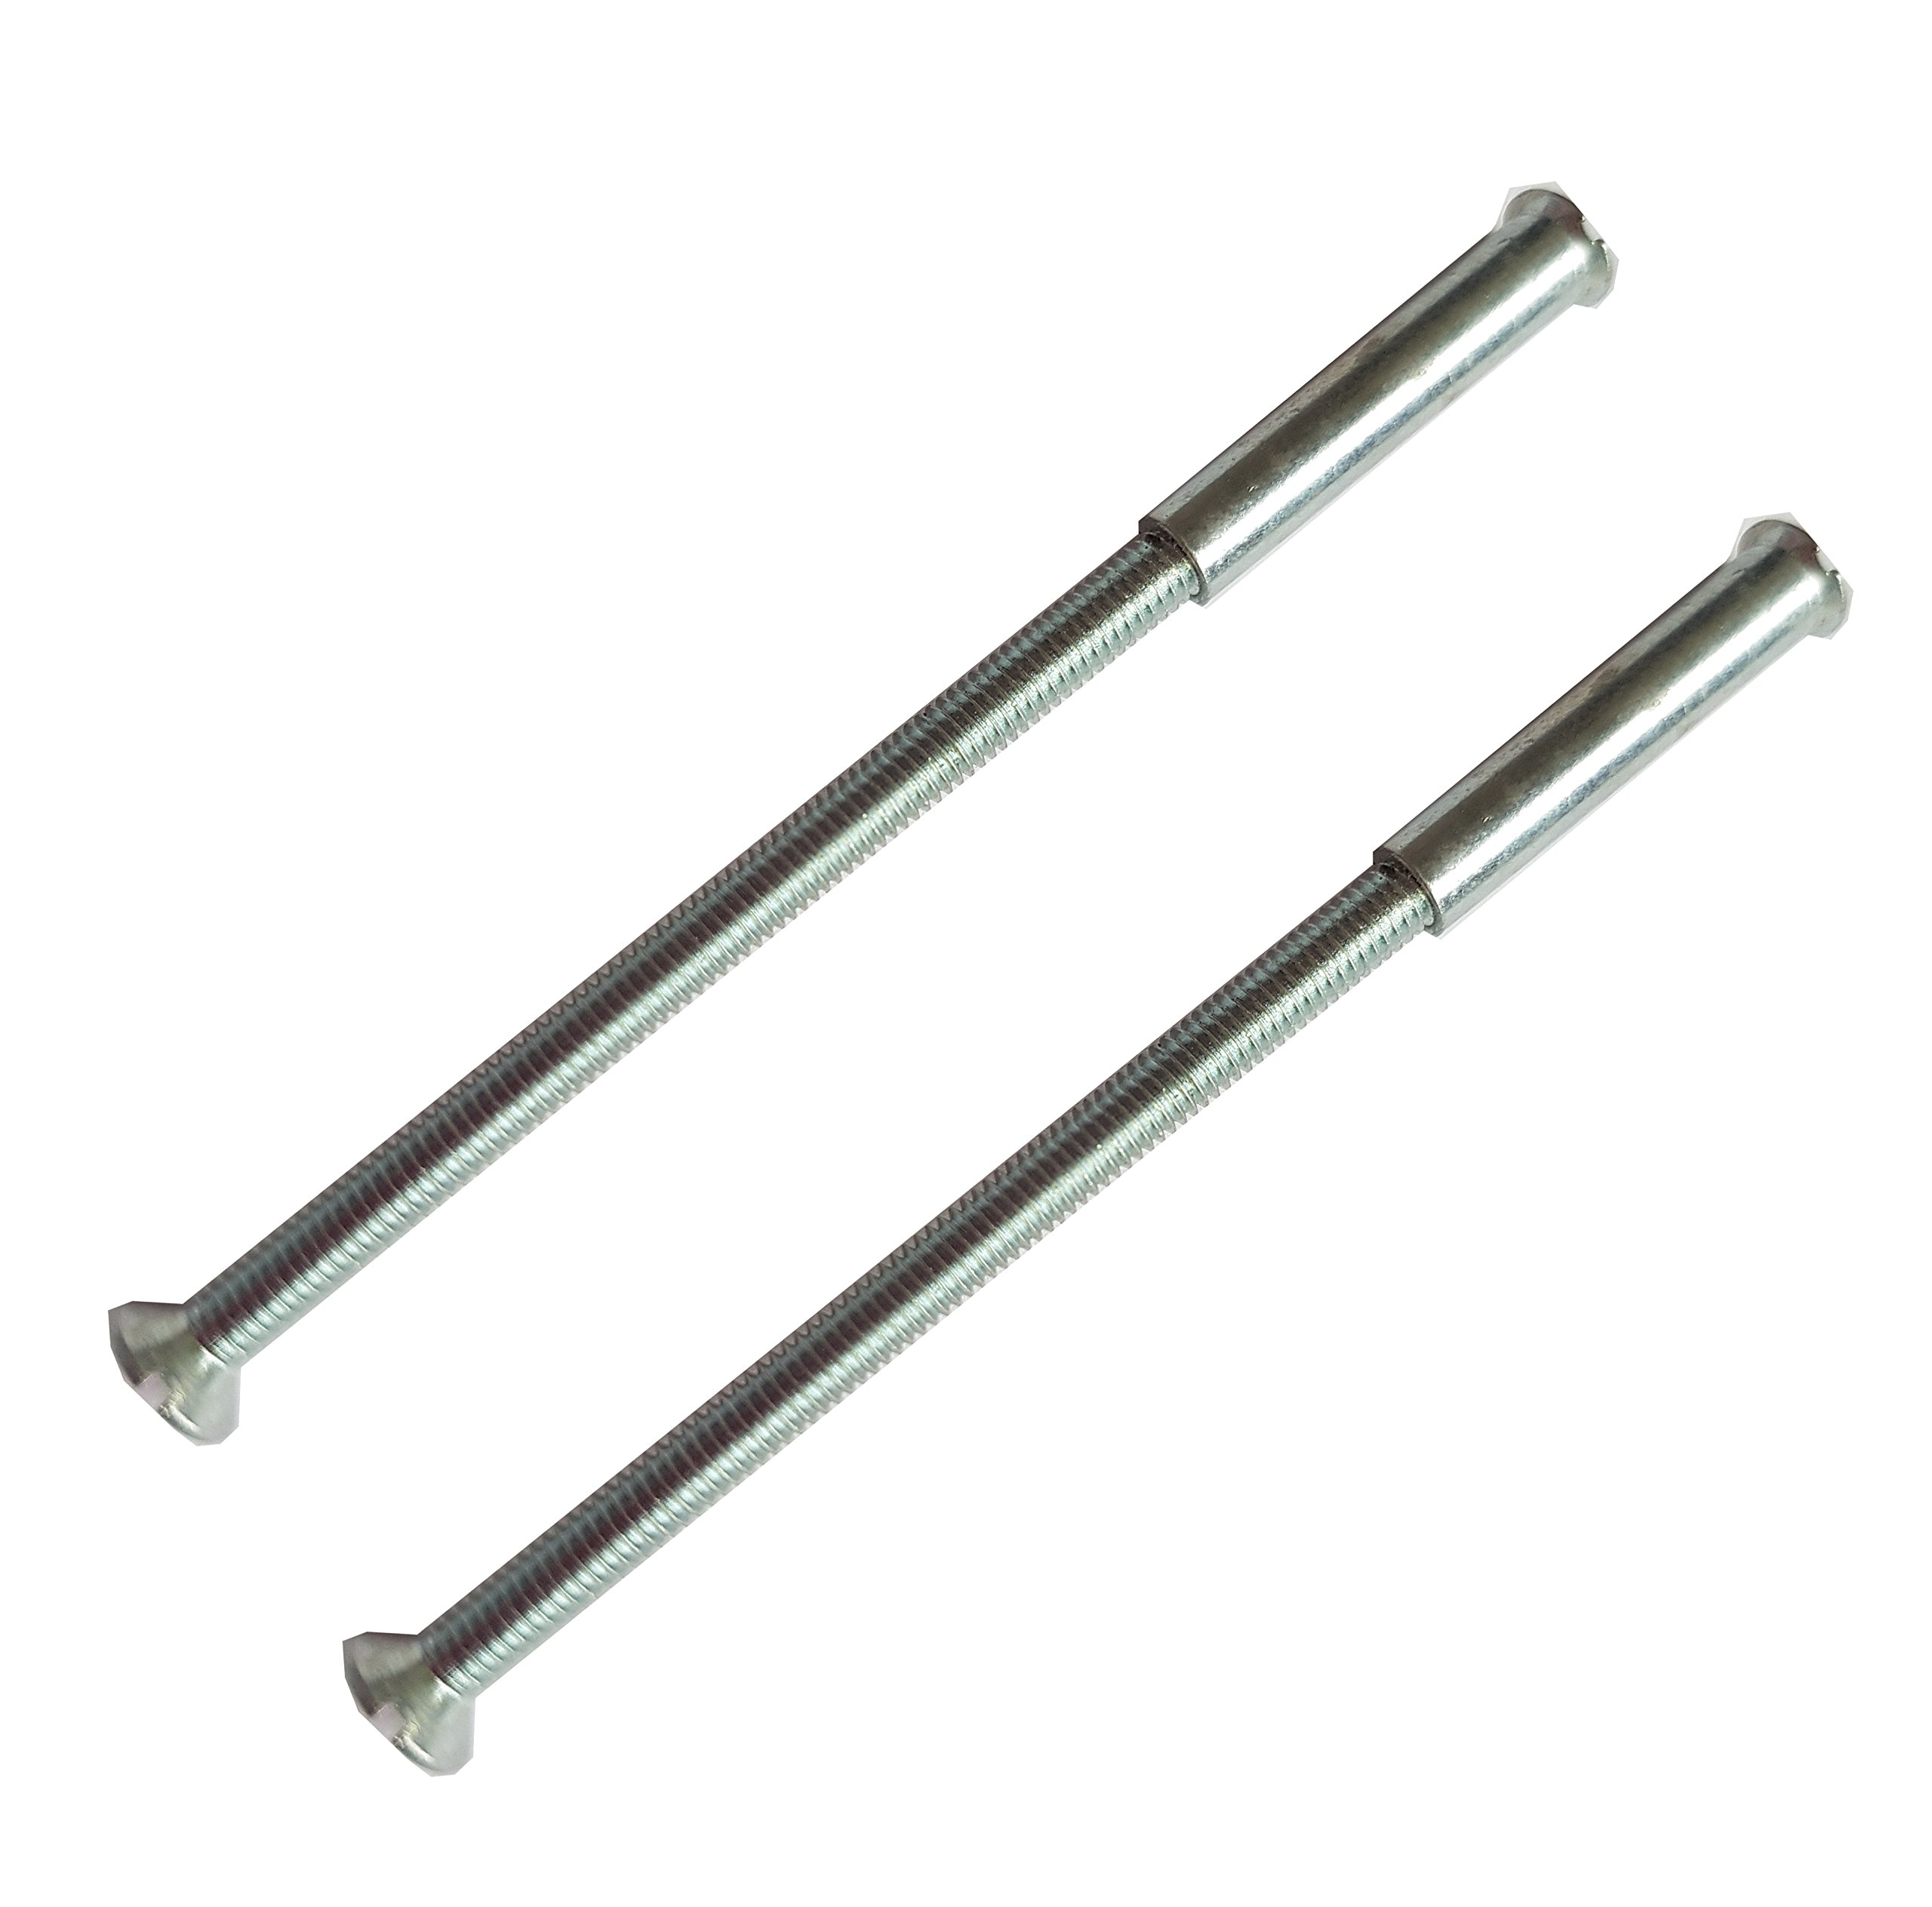 2 x M3 Screws Connecting Bolts and Sleeve for Fixing Door Handles, Knobs and Others (Silver)